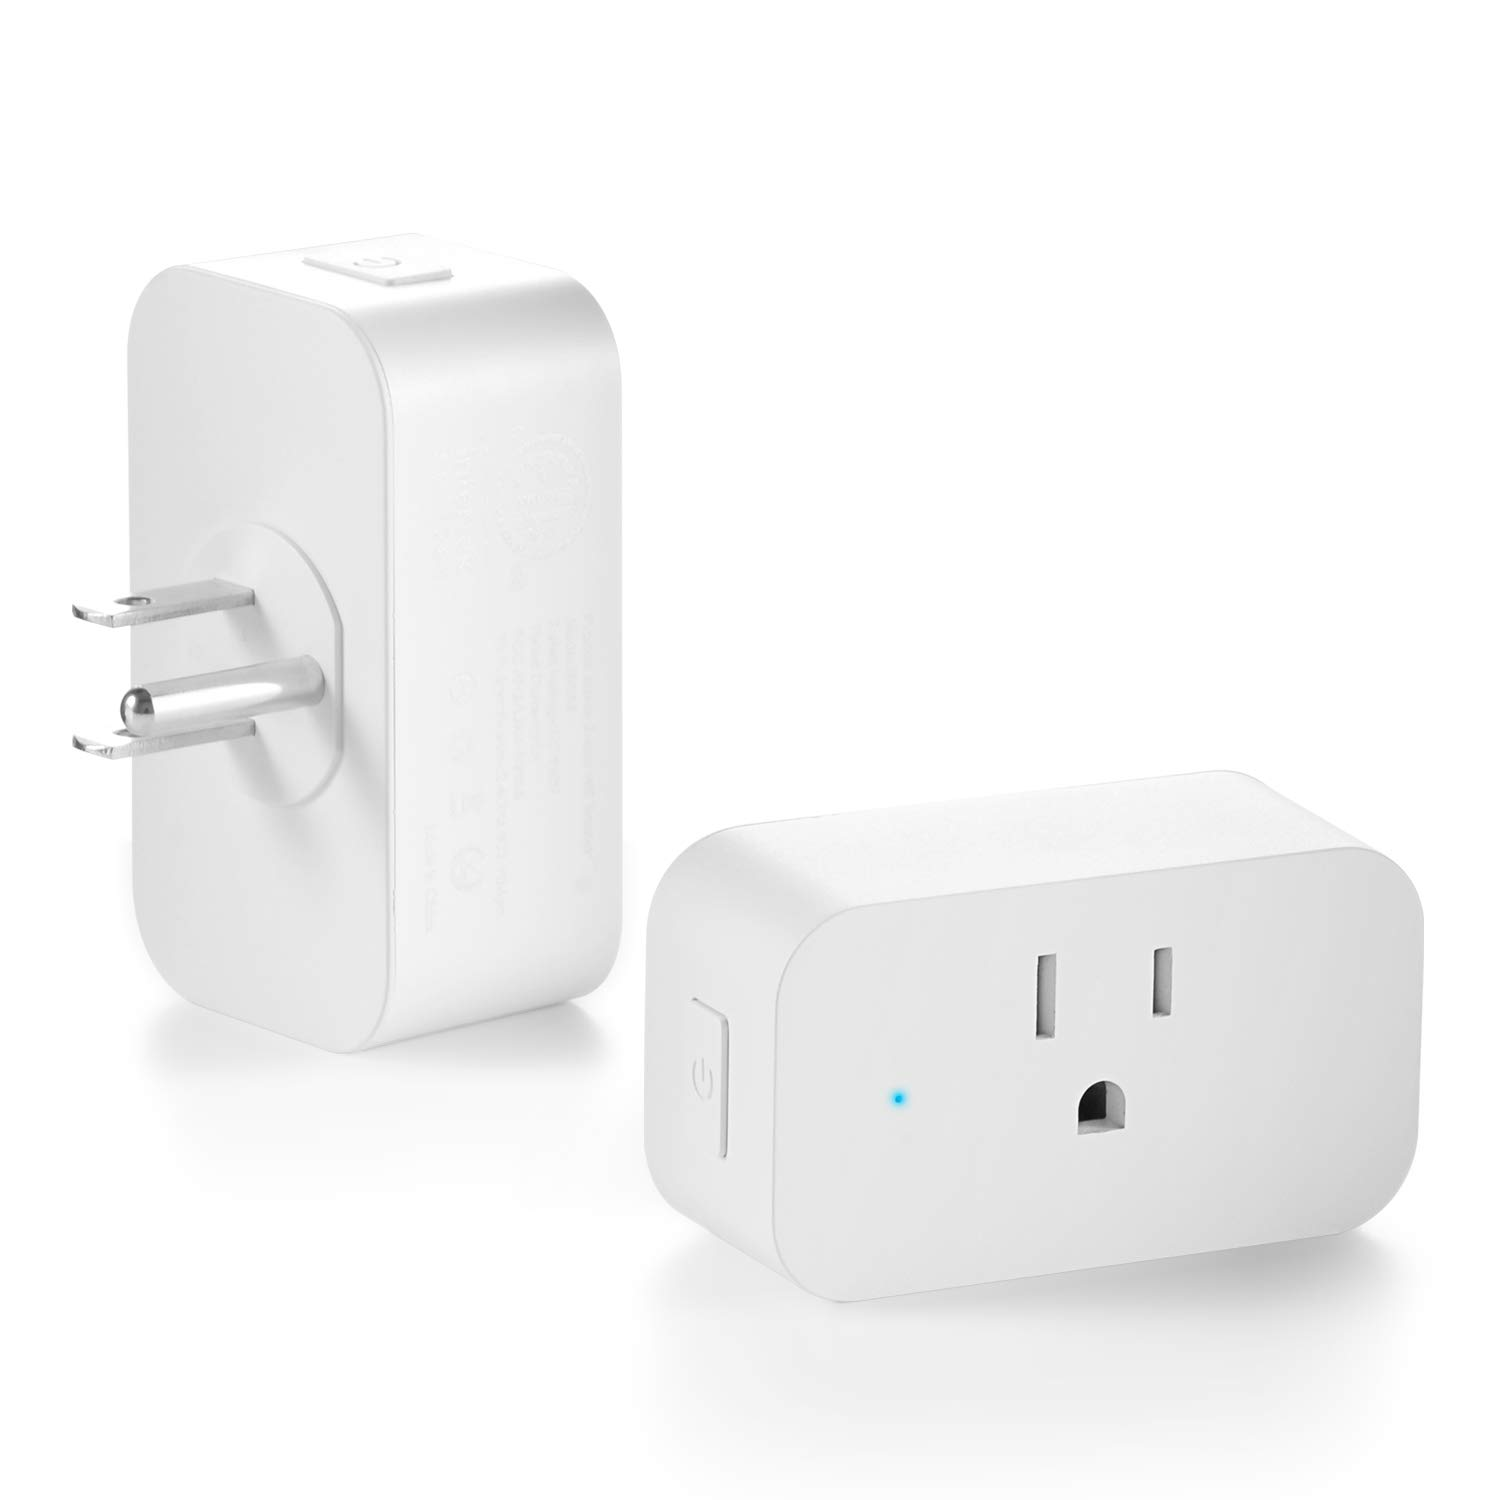 WiFi Smart Plug, Mini Smart Socket Outlet Work with Amazon Alexa Echo/Google Assistant and IFTTT, No Hub Required, Remote Control Your Devices from Anywhere (2 Pack)